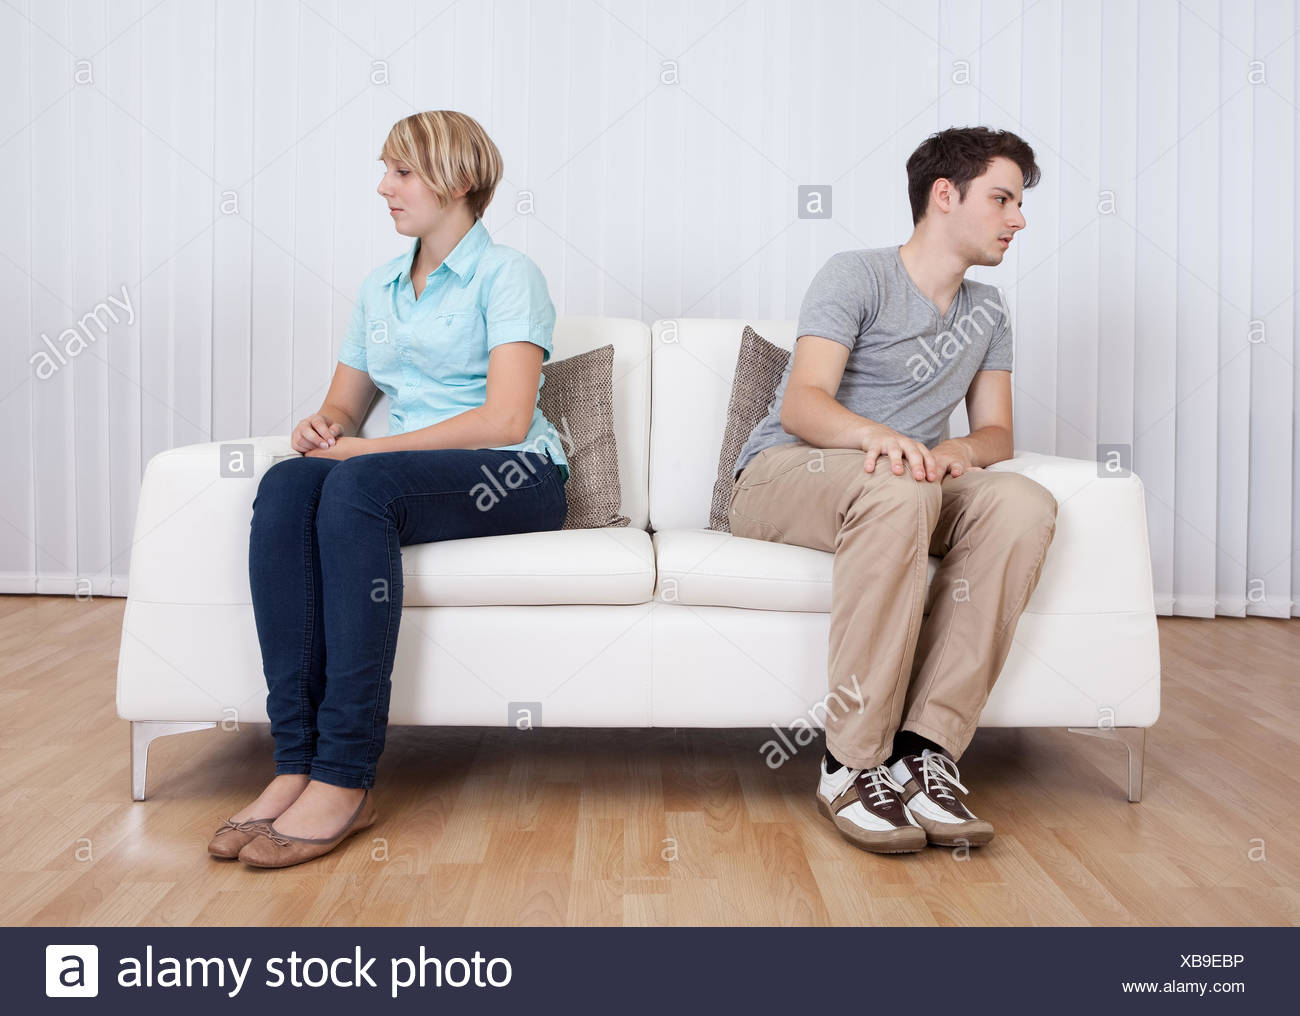 Brother and sister have had an argument and are sitting at opposite ends of a sofa - Stock Image